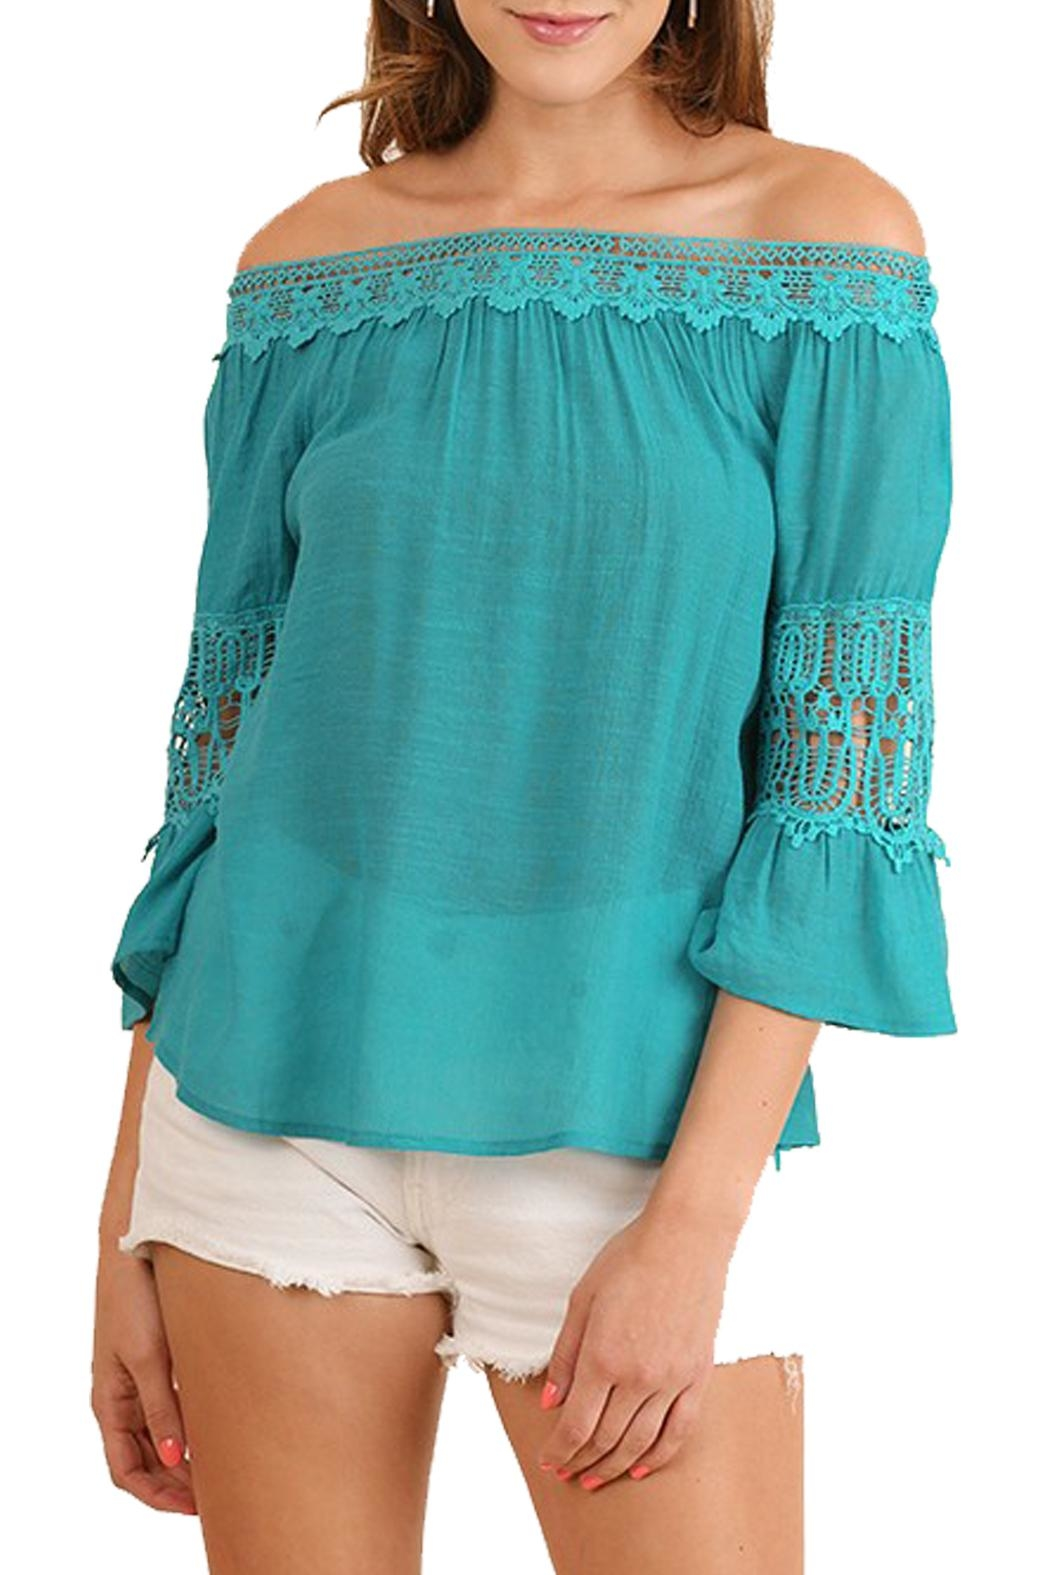 Umgee USA Teal Off-The-Shoulder Top - Main Image